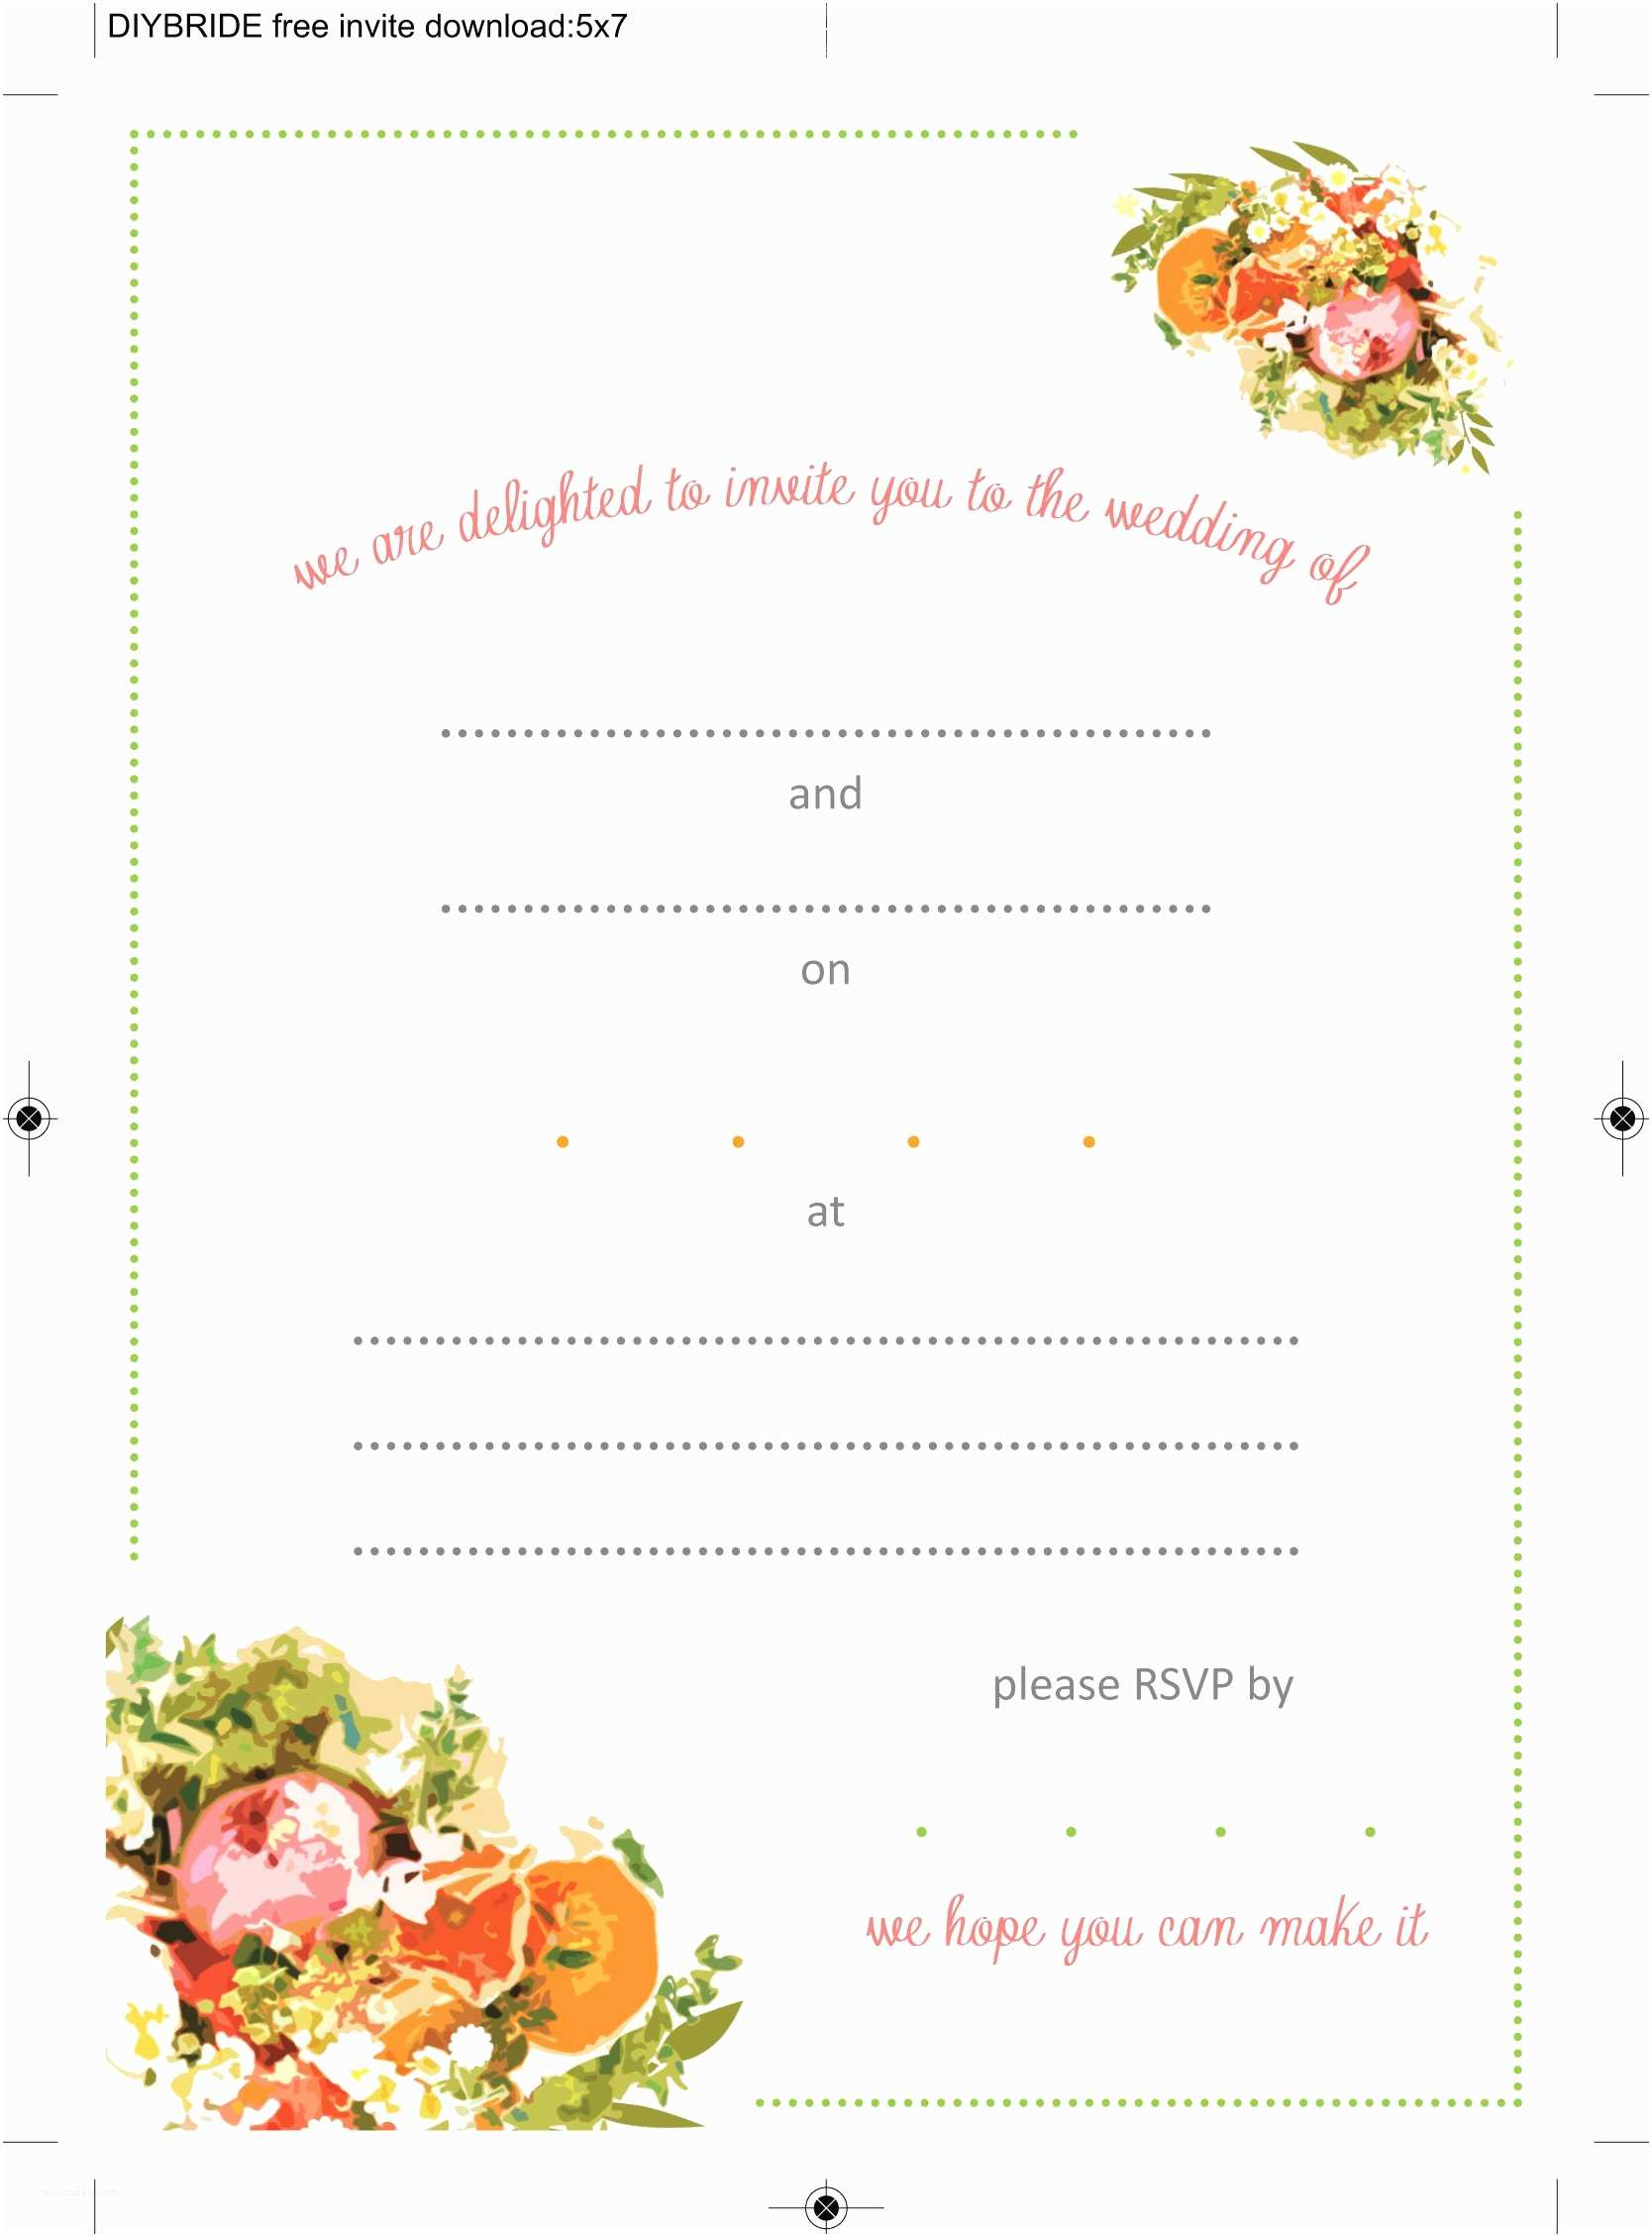 Wedding Invitation Design Images Free Printable Wedding Invitation Templates Download